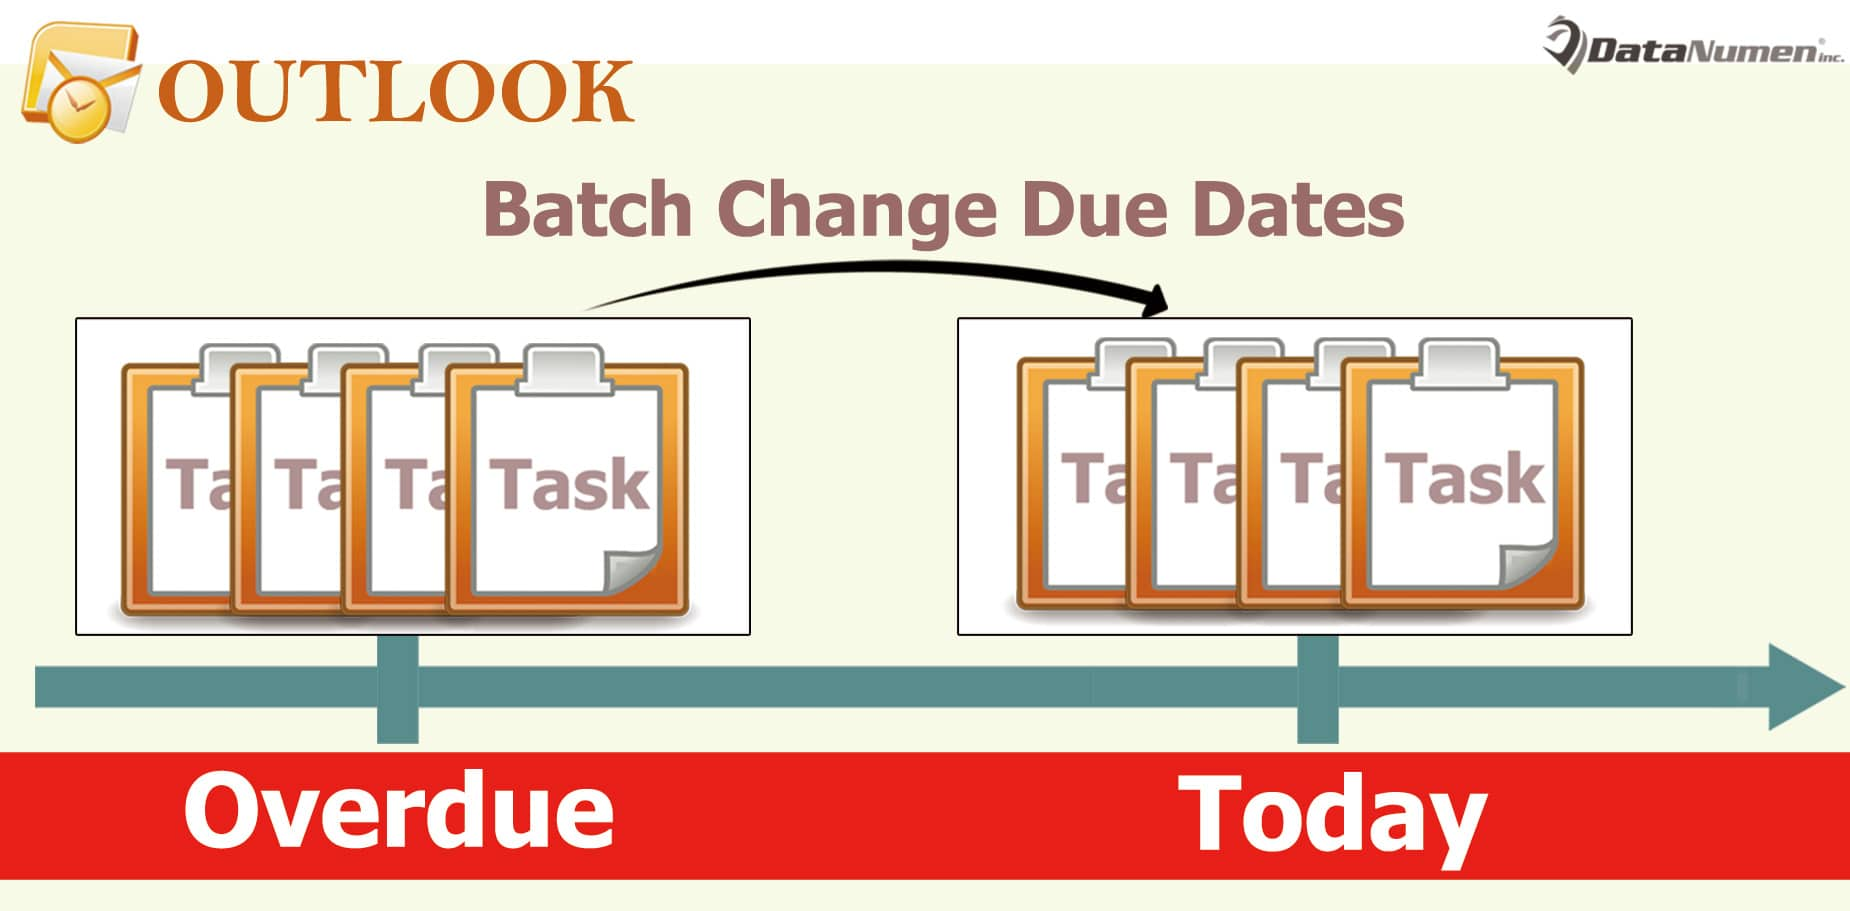 Batch Change All Overdue Tasks' Due Dates to Today in Outlook